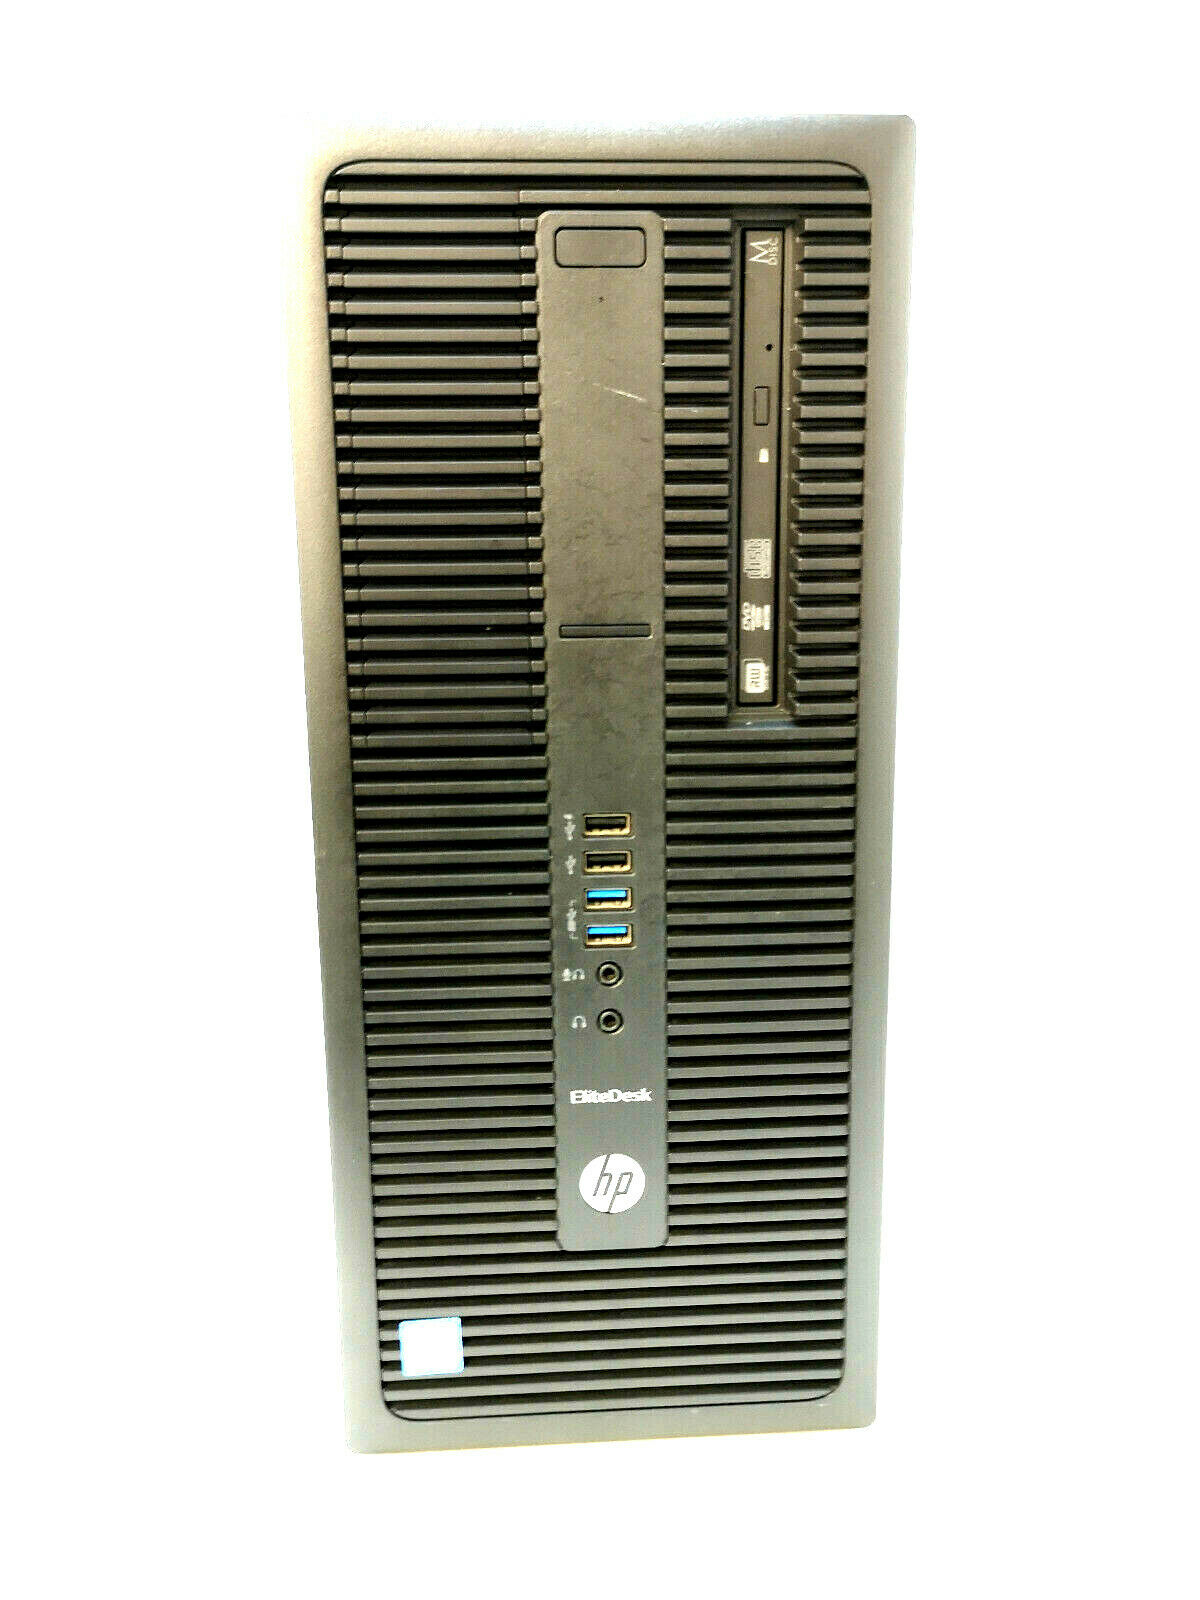 HP EliteDesk 800 G2 No 2